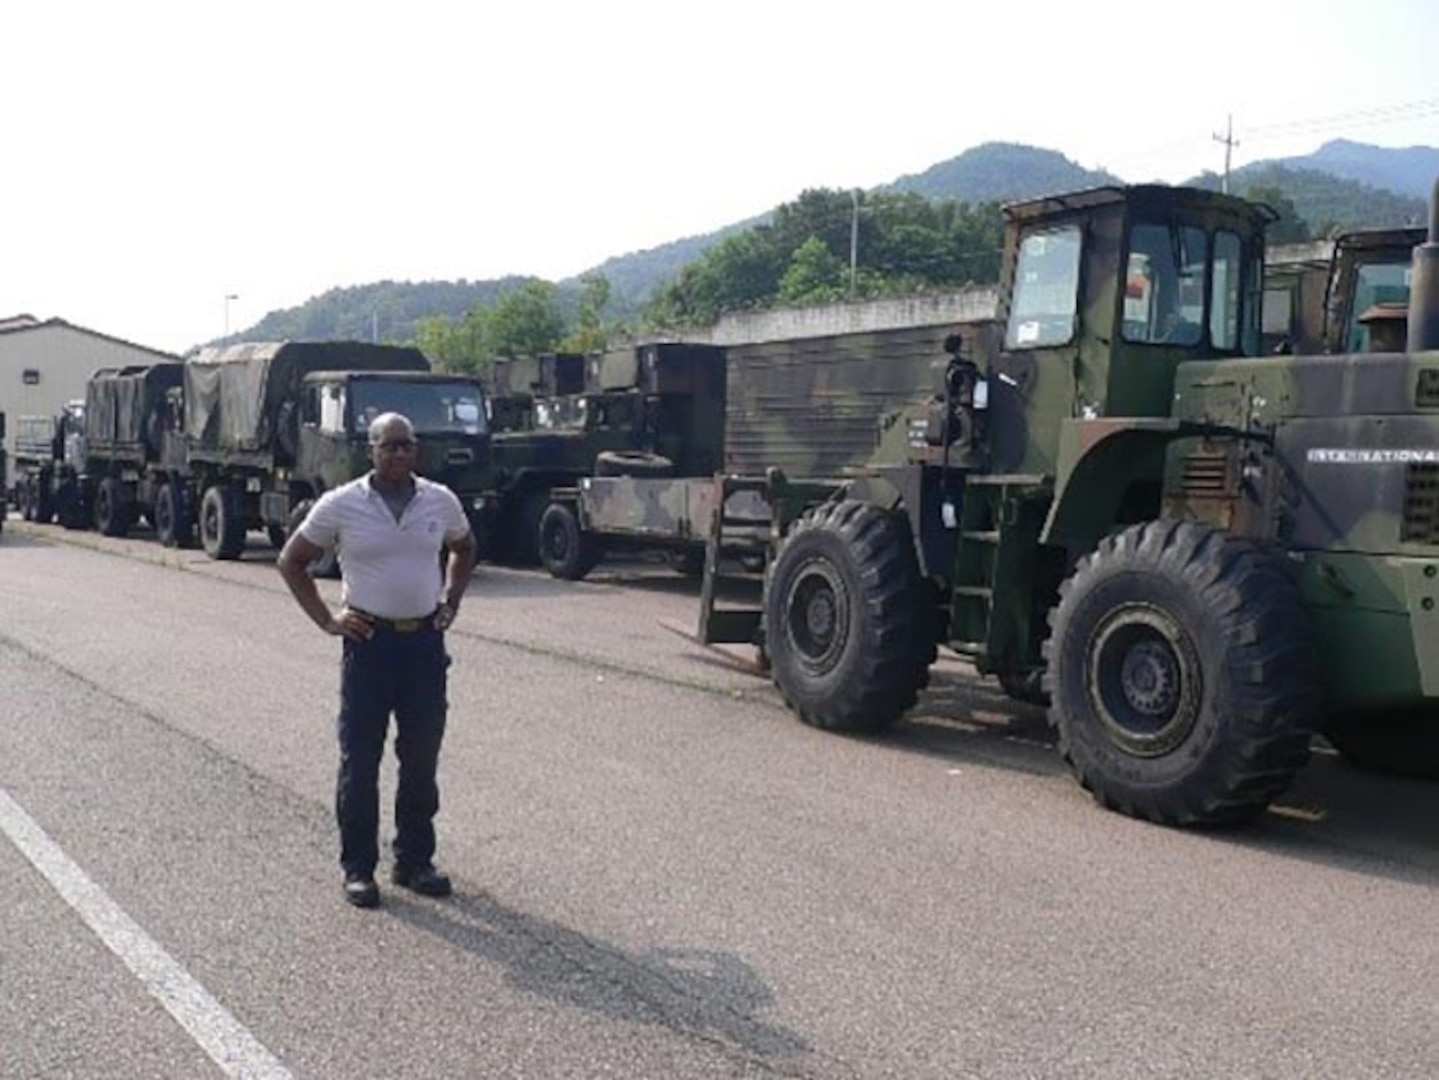 Area Manager Terry Harrington surveys some of the vehicles being turned in through DLA Disposition Services at Gimcheon as part of the Class II and Class VII Excess Reduction.